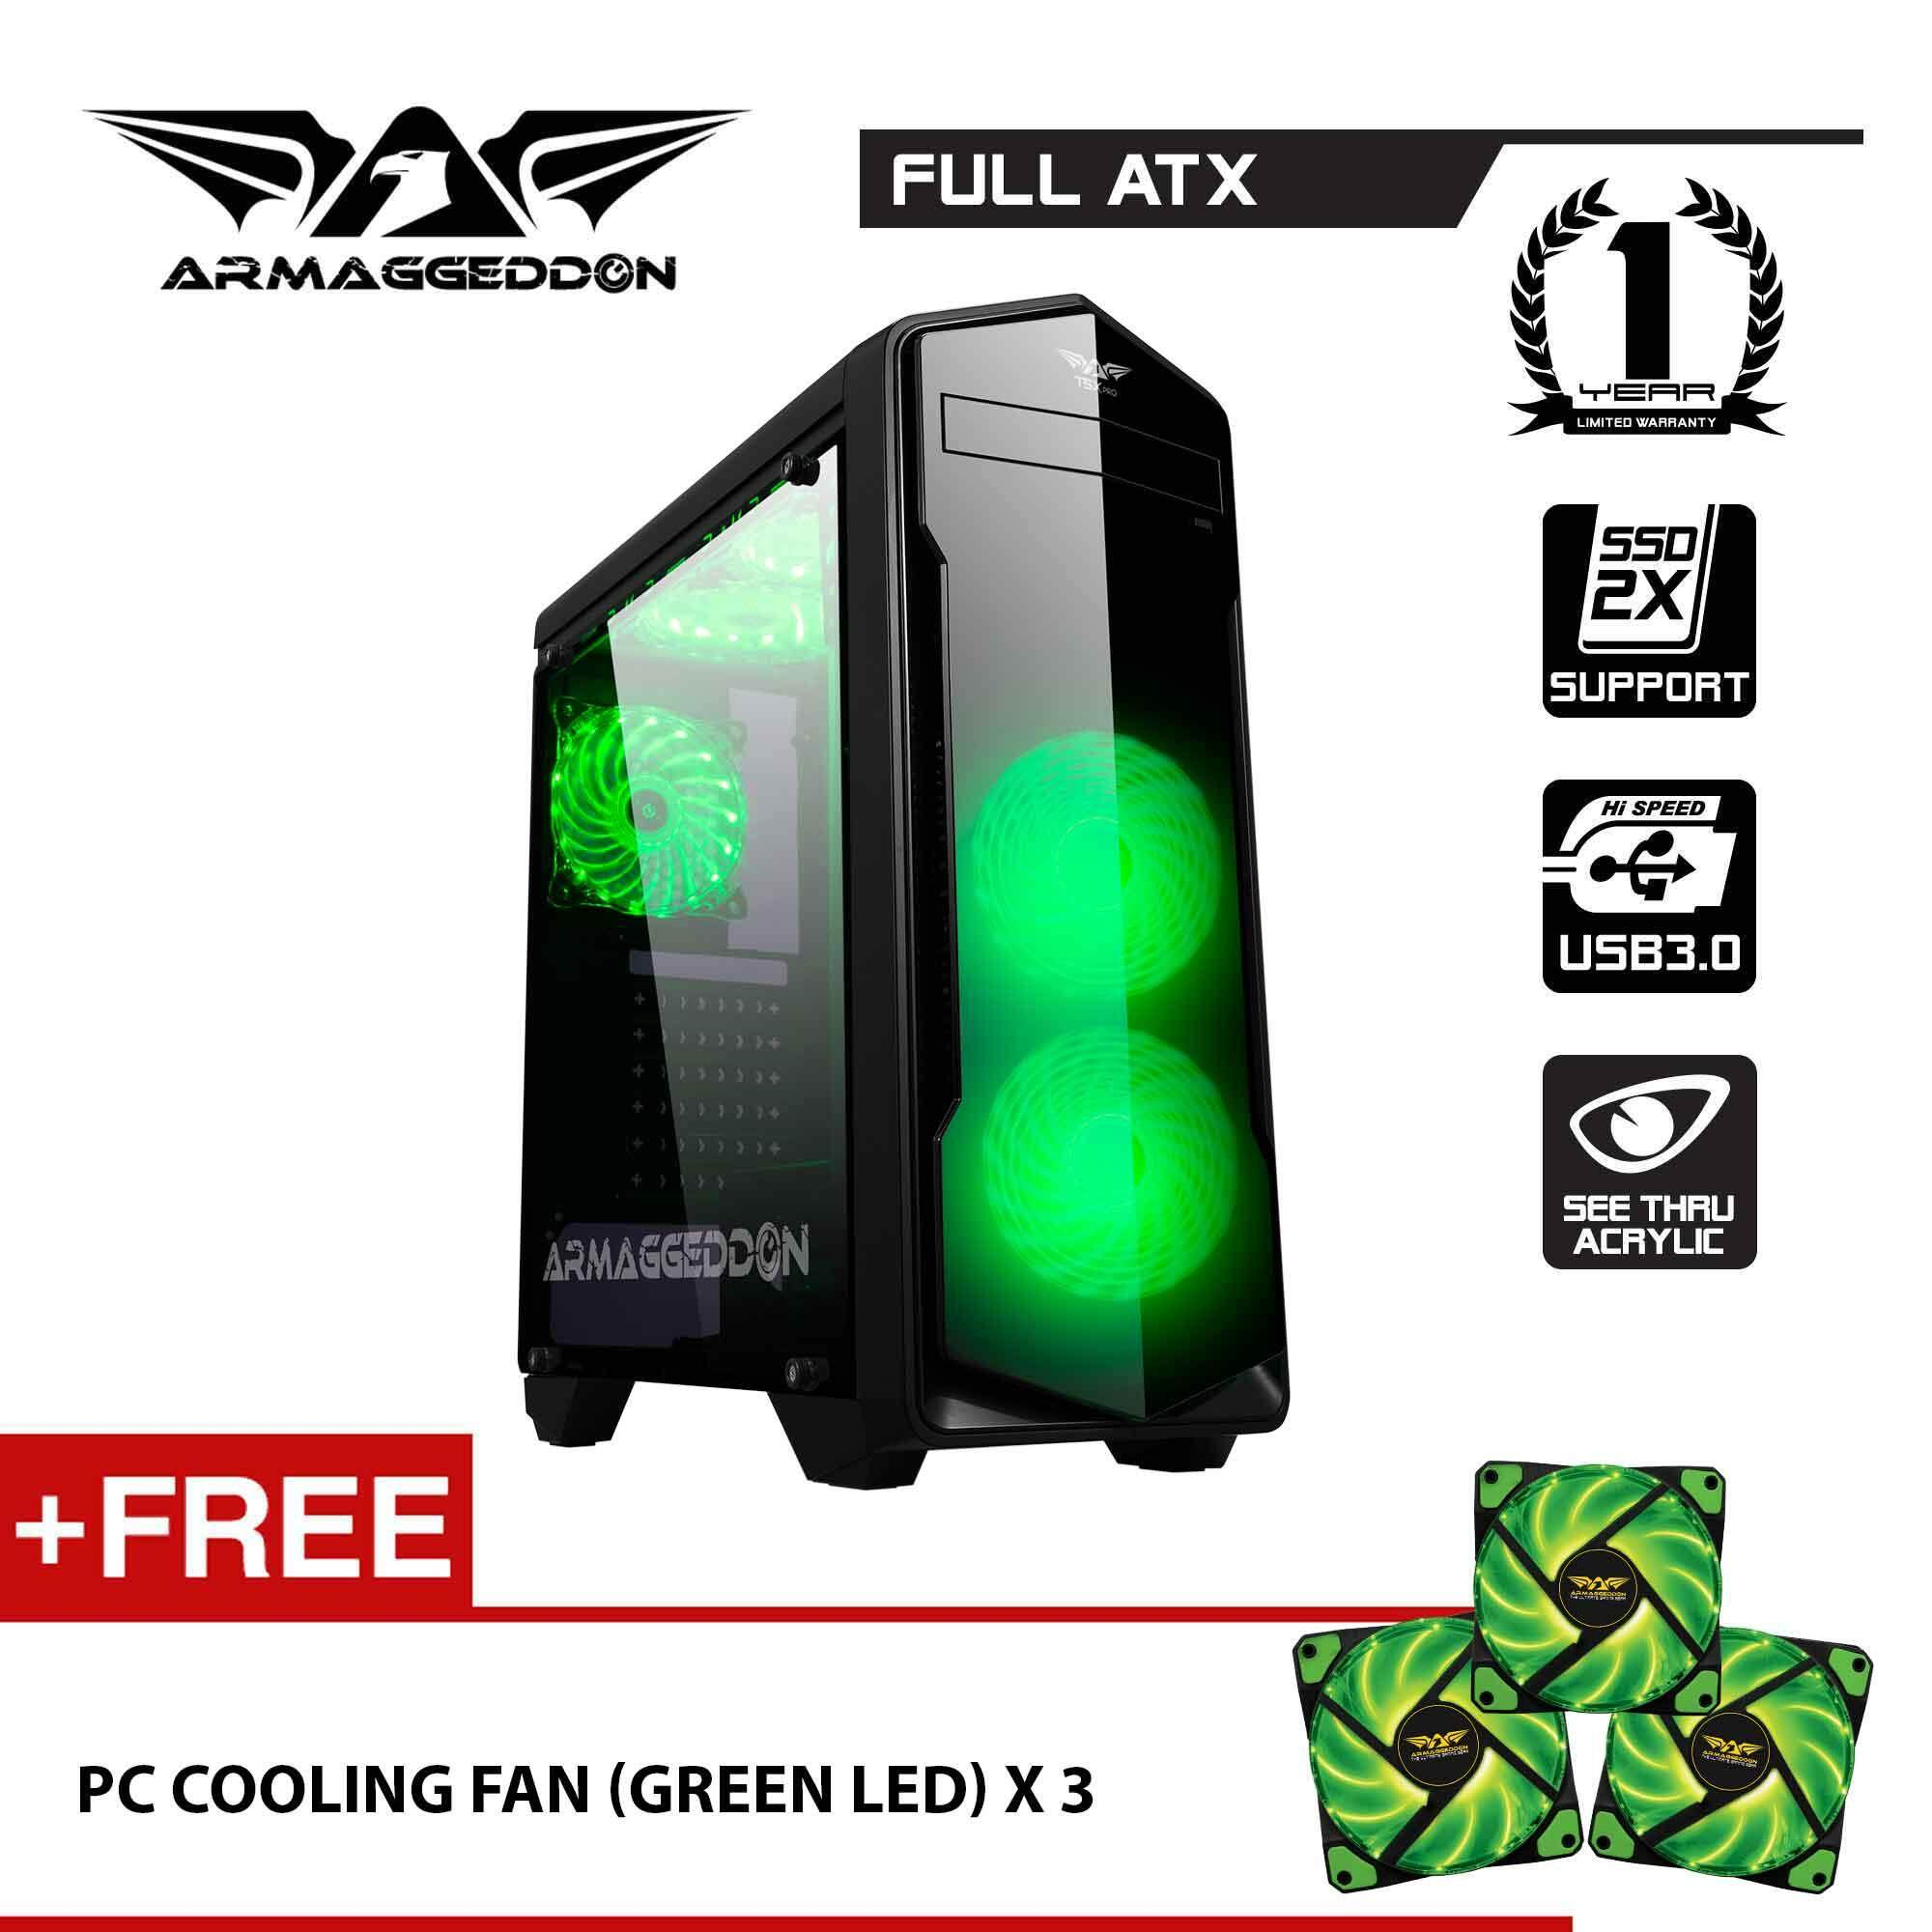 Armaggeddon T5x Pro Full ATX - Smart Gaming Structure PC Case Free PC Cooling LED Fan (x3) Malaysia